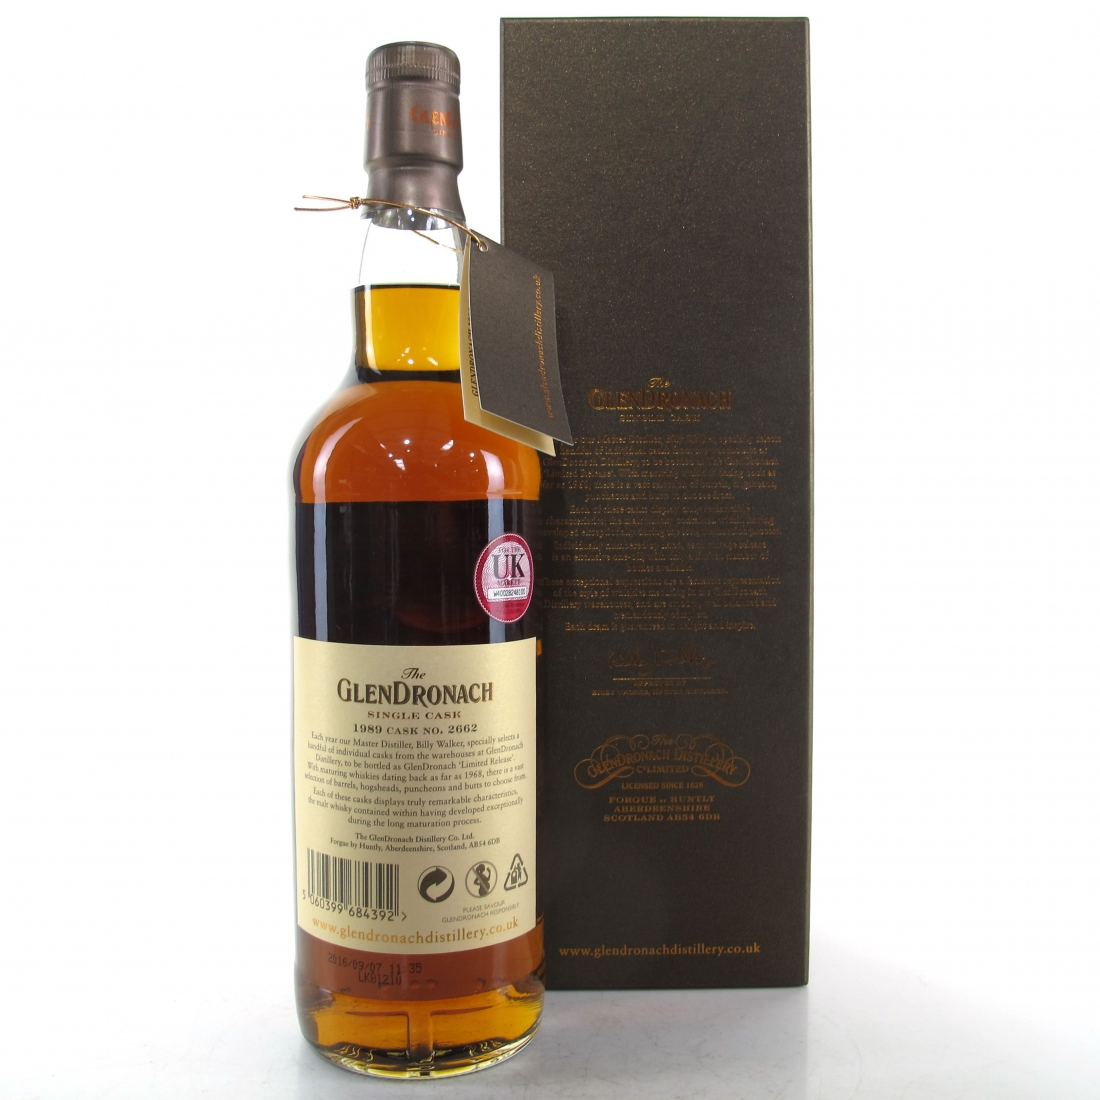 Glendronach 1989 Single Cask 26 Year Old #2662